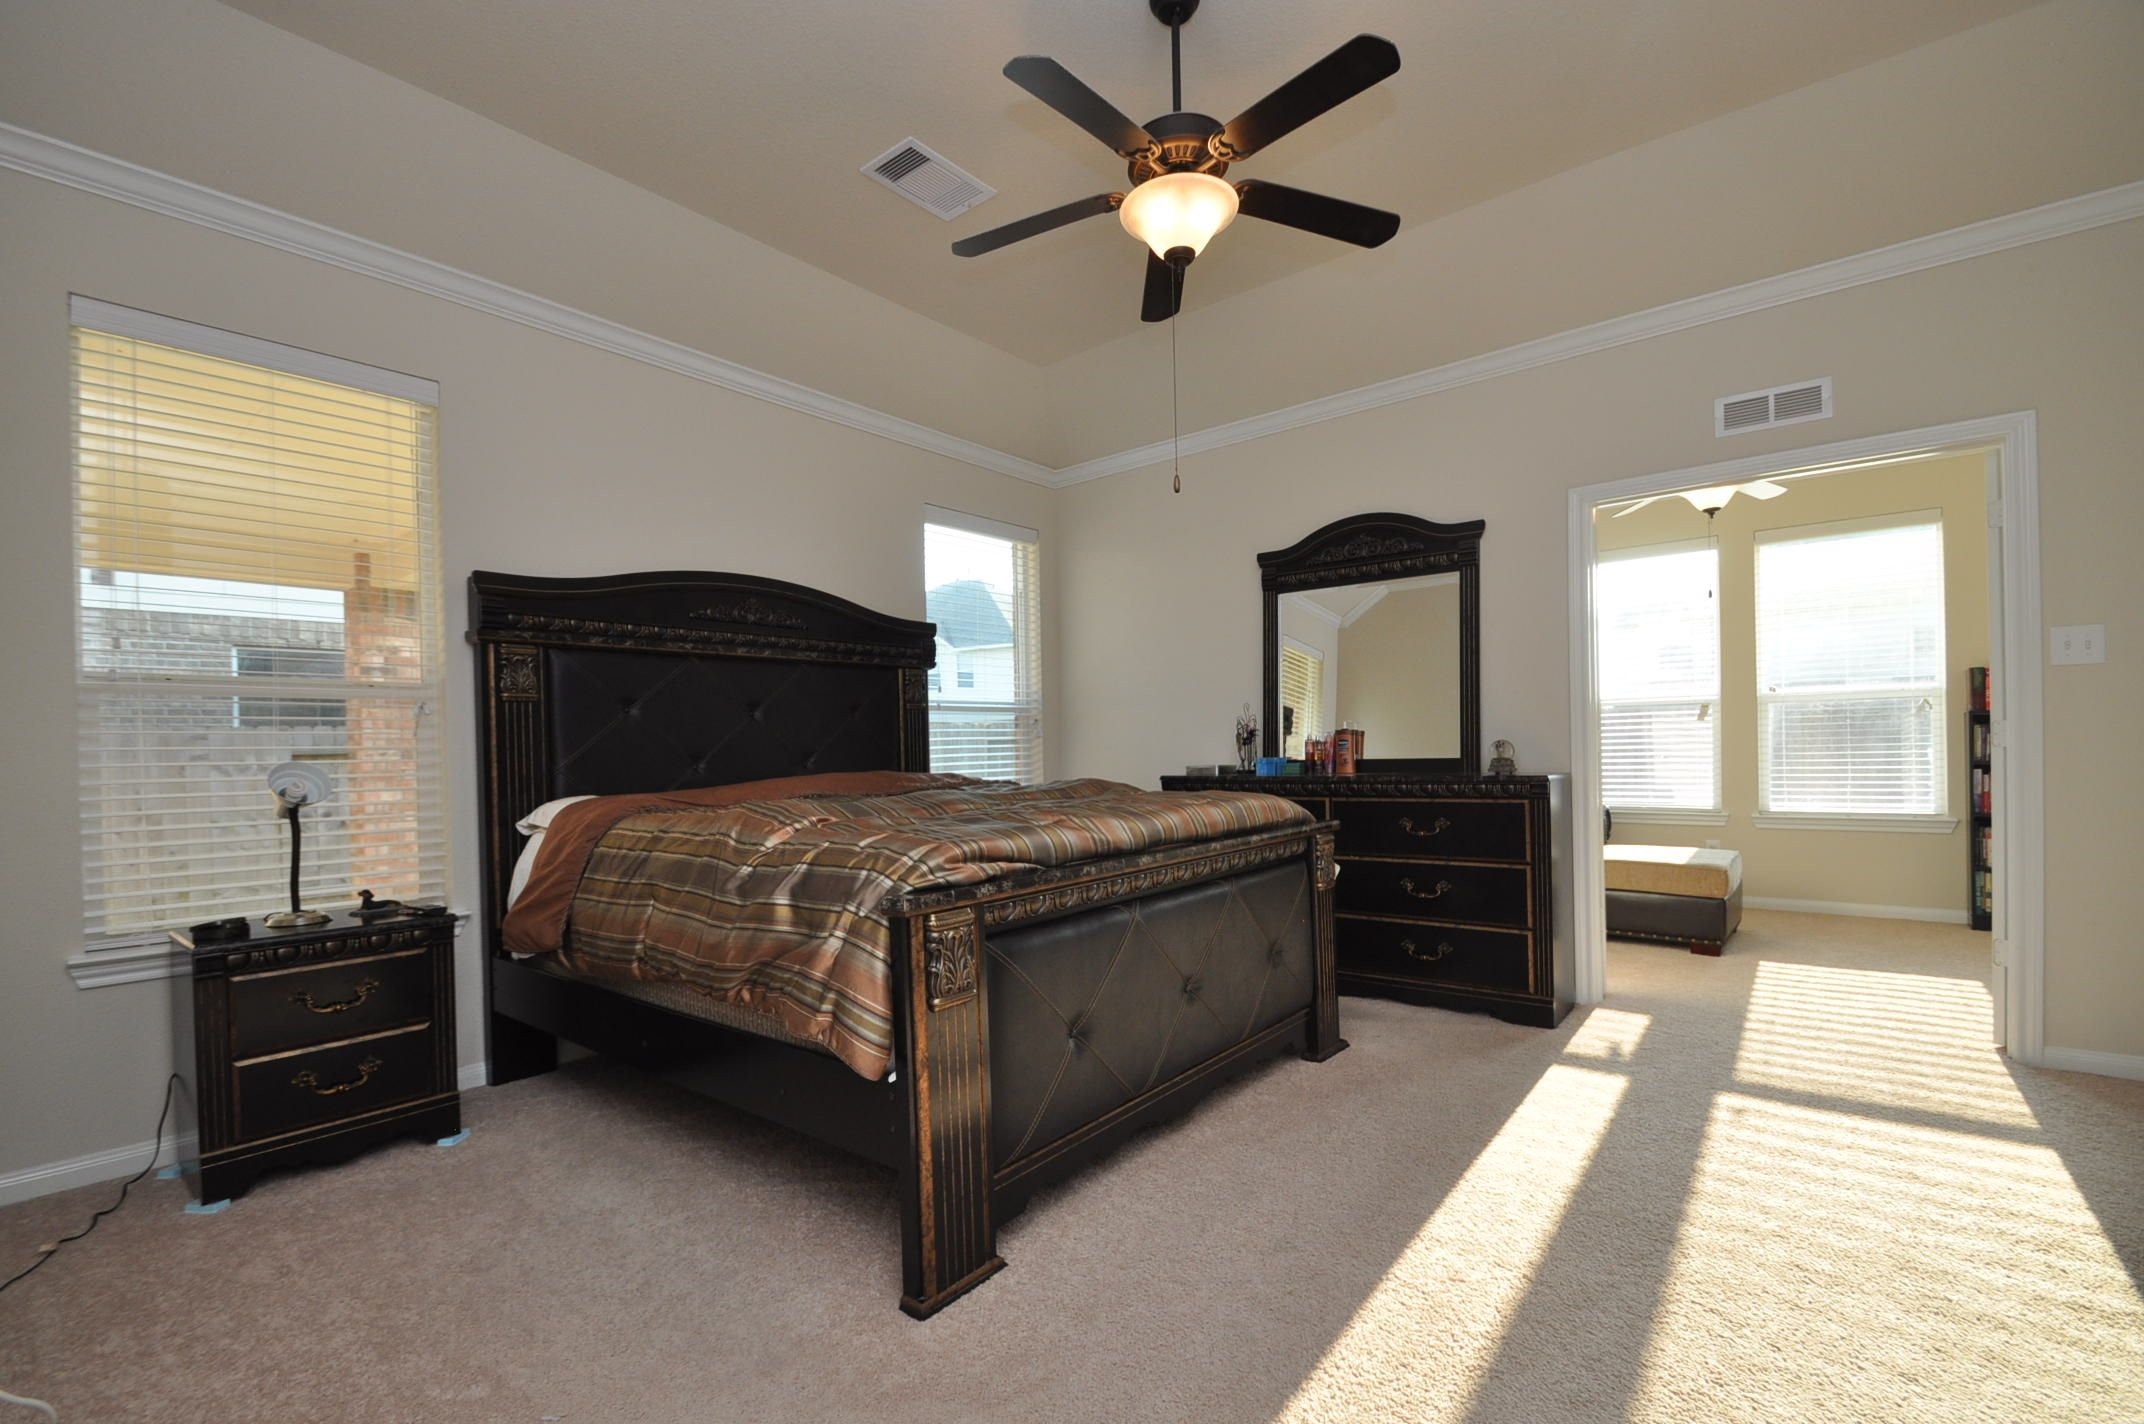 Best Large Master Bedroom With Separate Study Area Or Setting 400 x 300